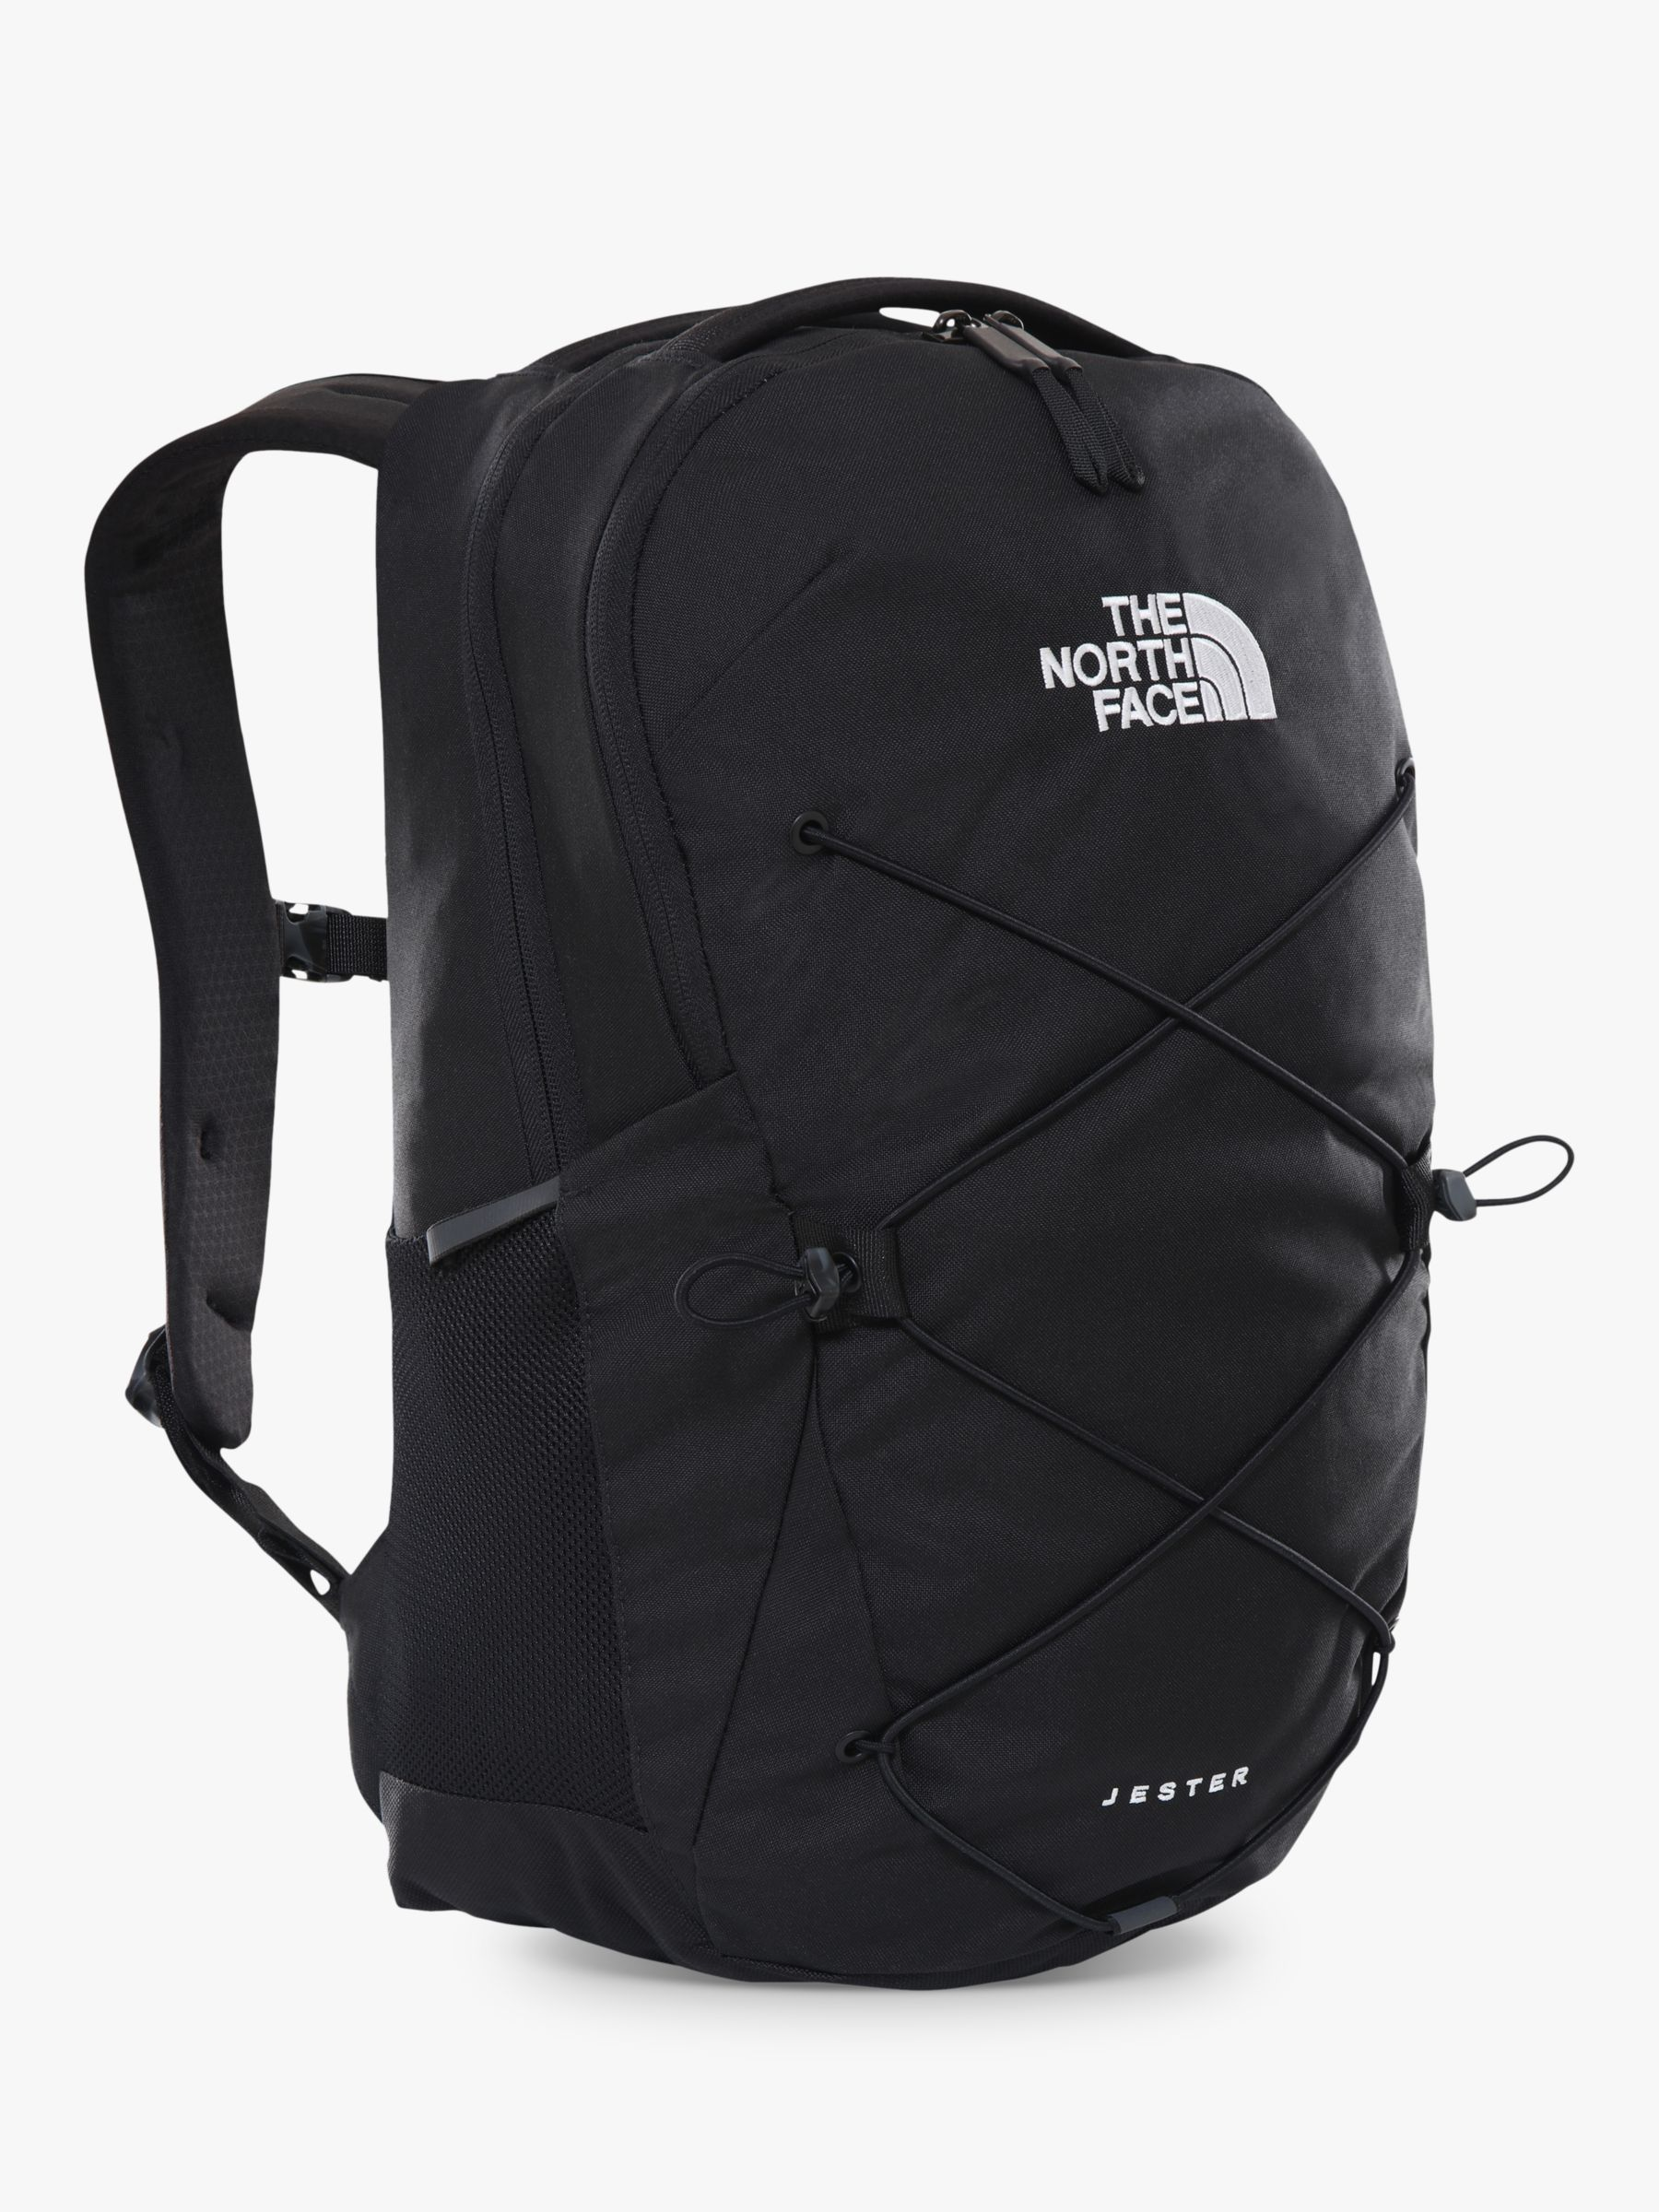 The North Face The North Face Jester Day Backpack